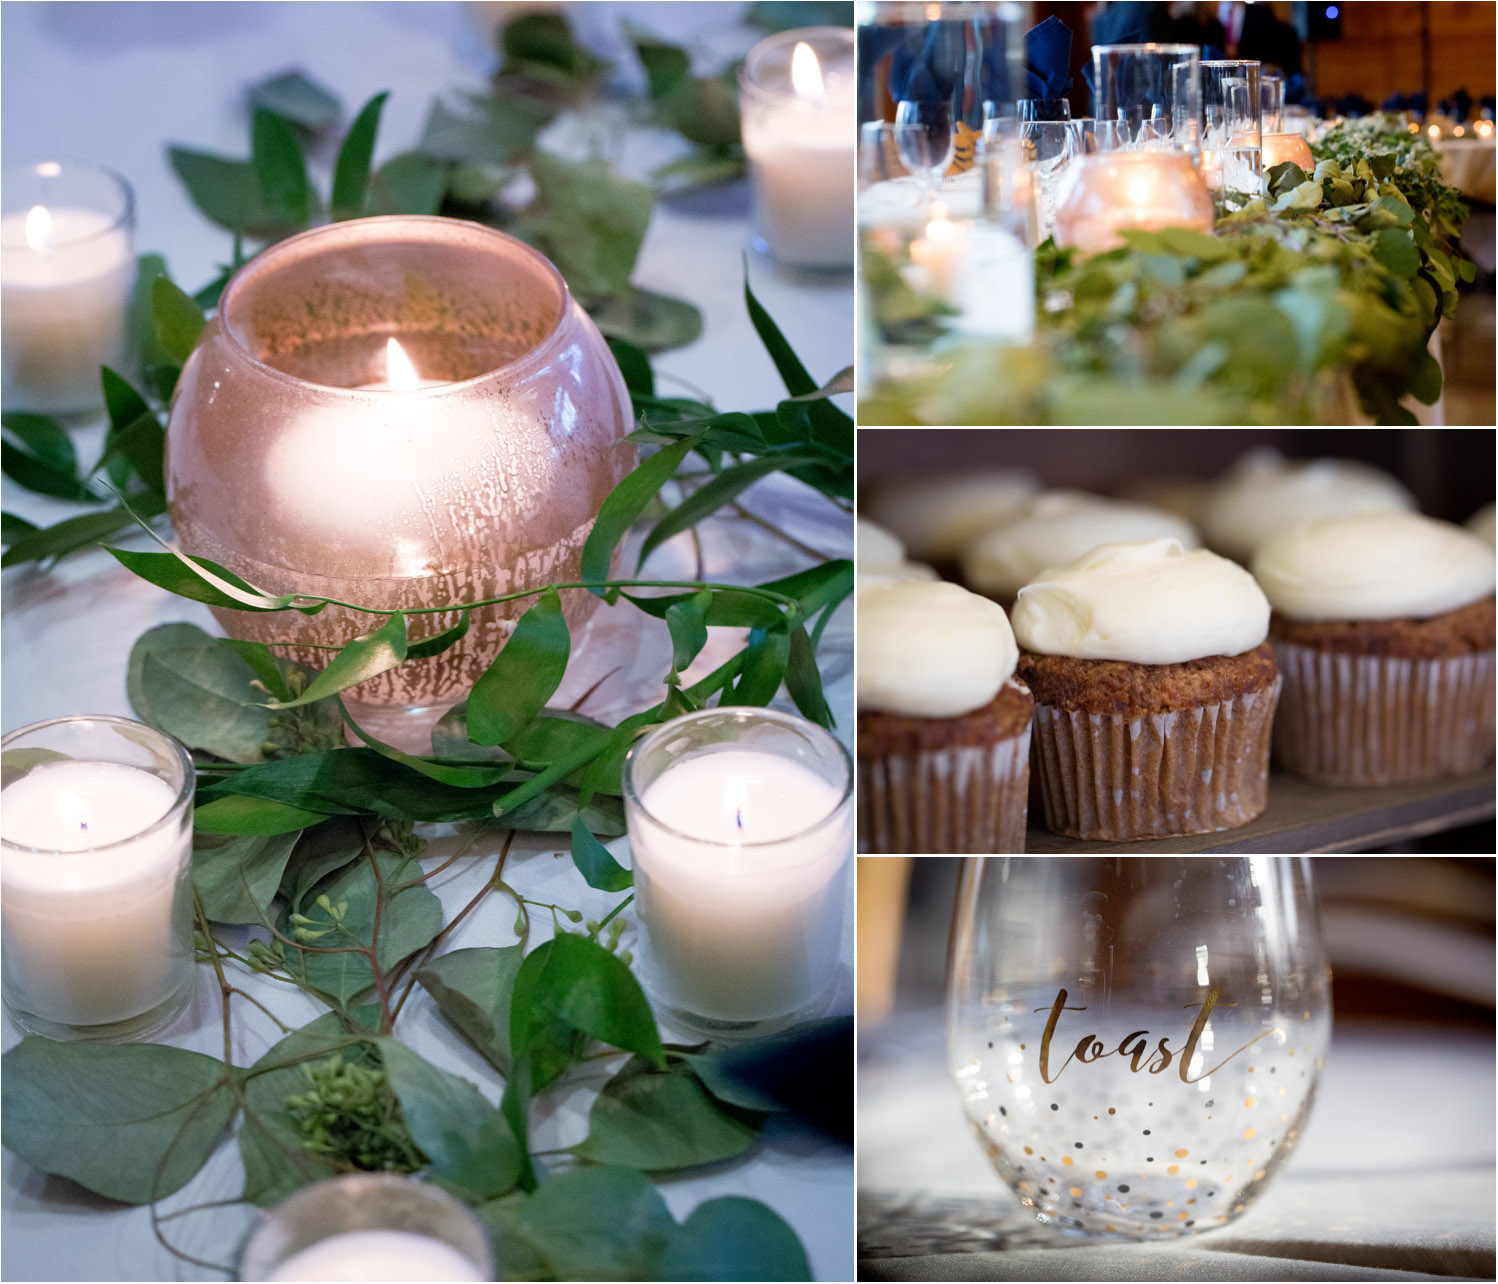 16-three-rivers-park-district-weddings-reception-details-silverwood-great-hall-candles-greenery-cupcakes-toasting-glass-calligraphy-mahonen-photography.jpg